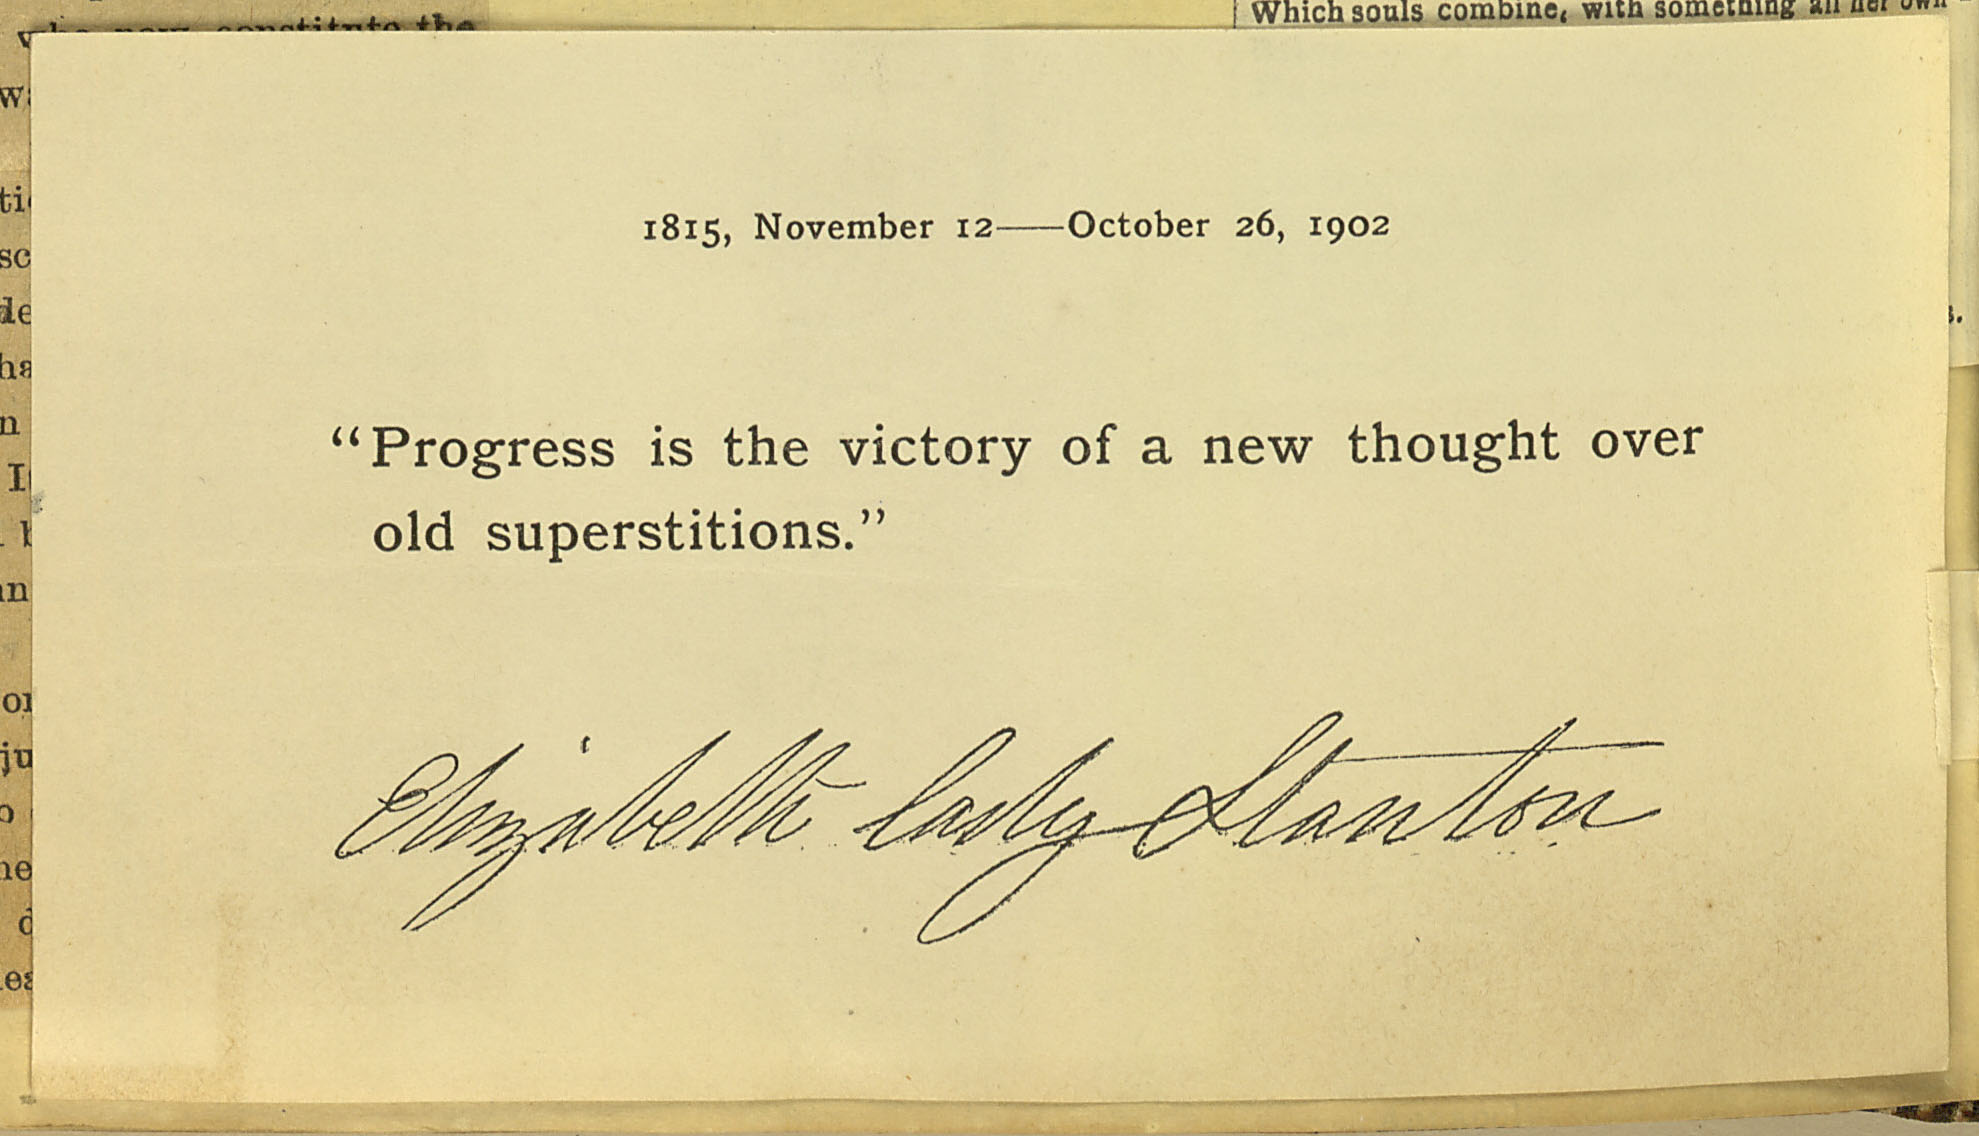 """Progress is the victory of new thought over old superstitions"" - Elizabeth Cady Stanton"